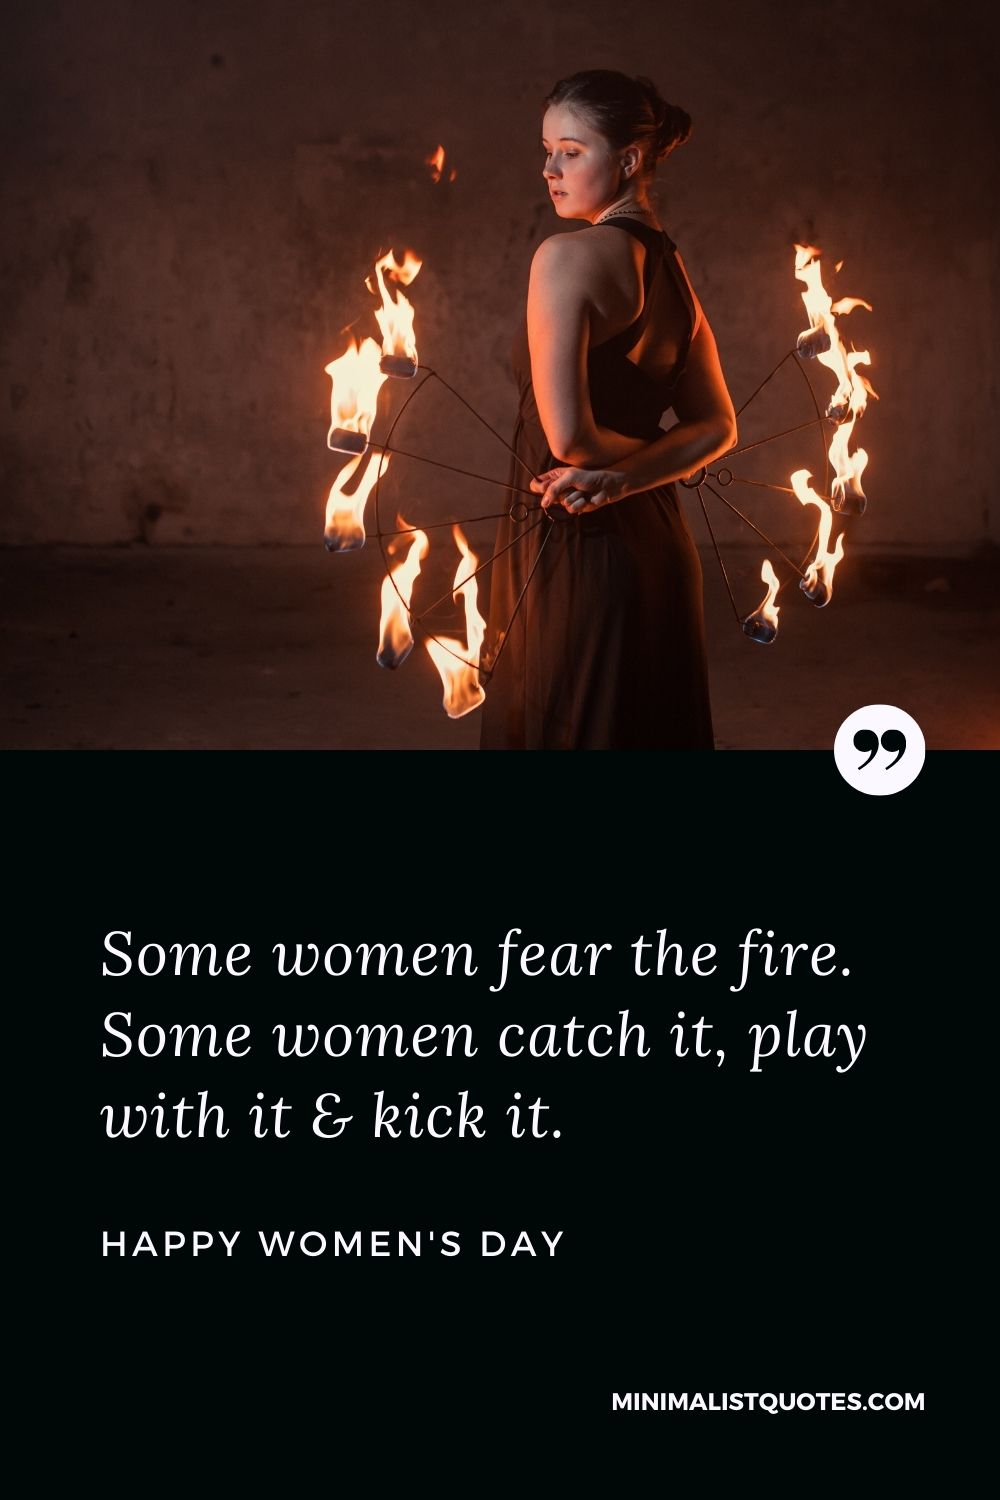 Women's Day Wish & Message: Some women fear the fire. Some women catch it, play with it & kick it.